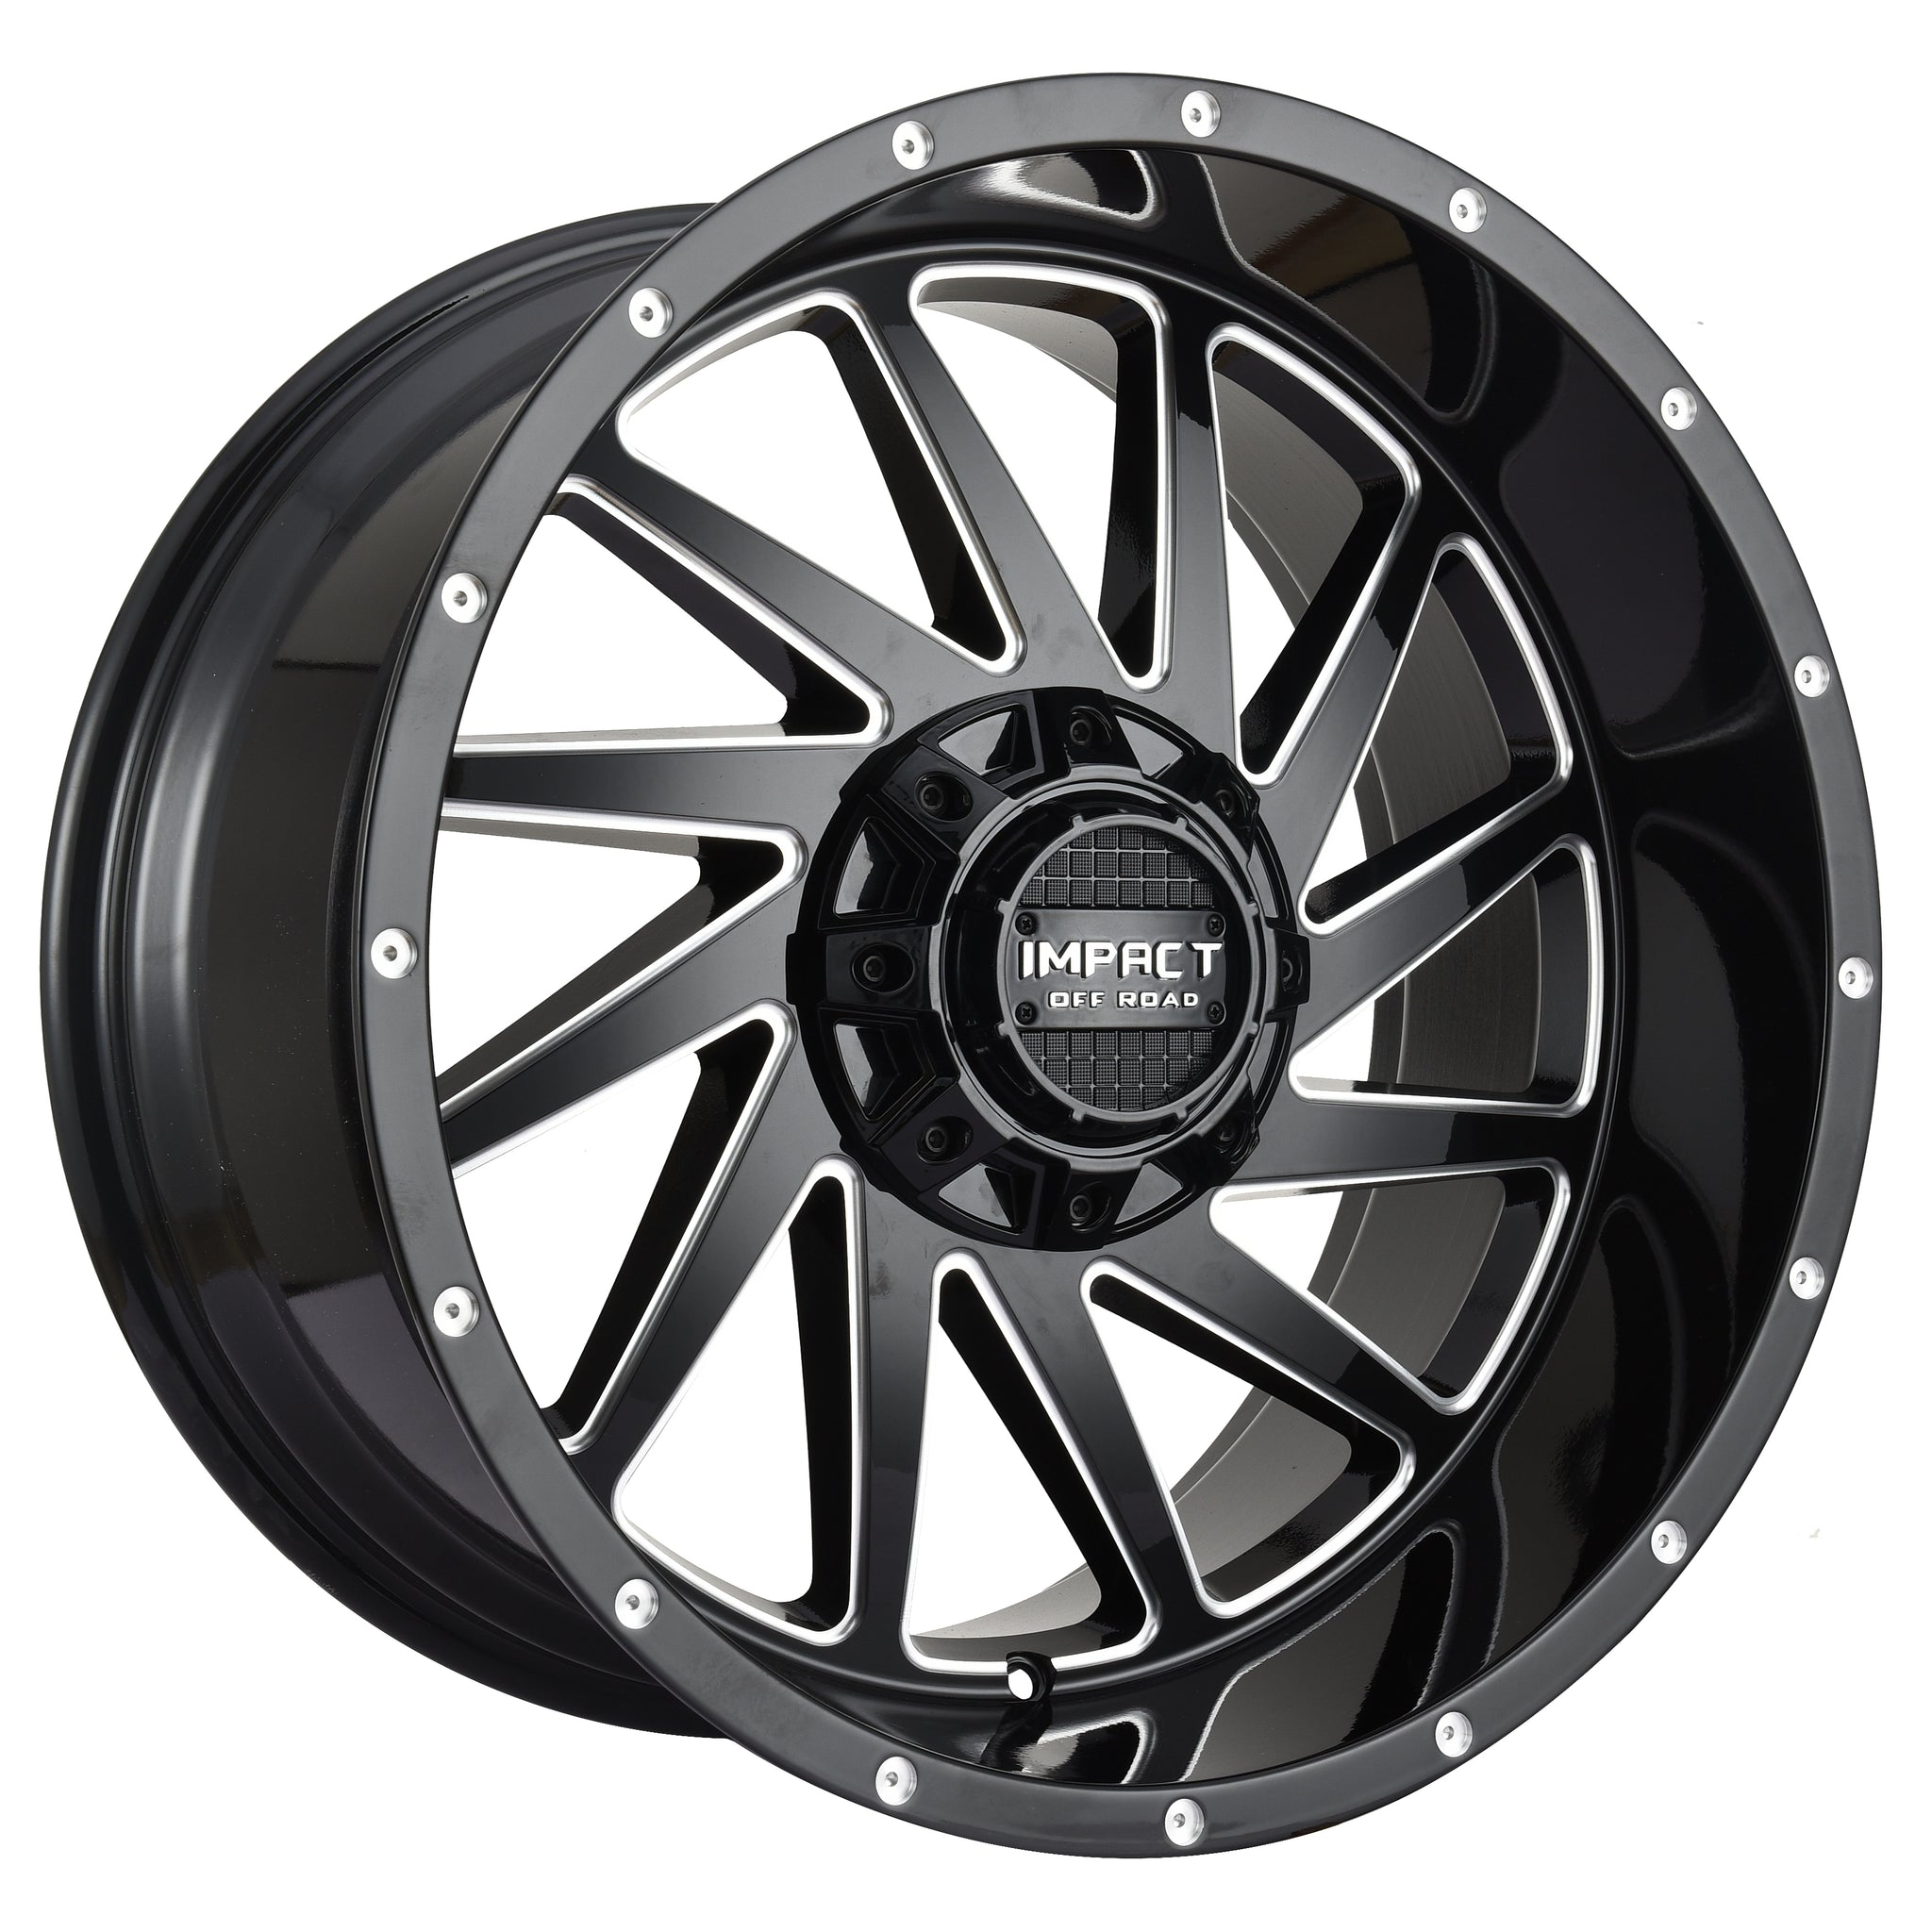 Impact Off Road Rims Wheels Style 811